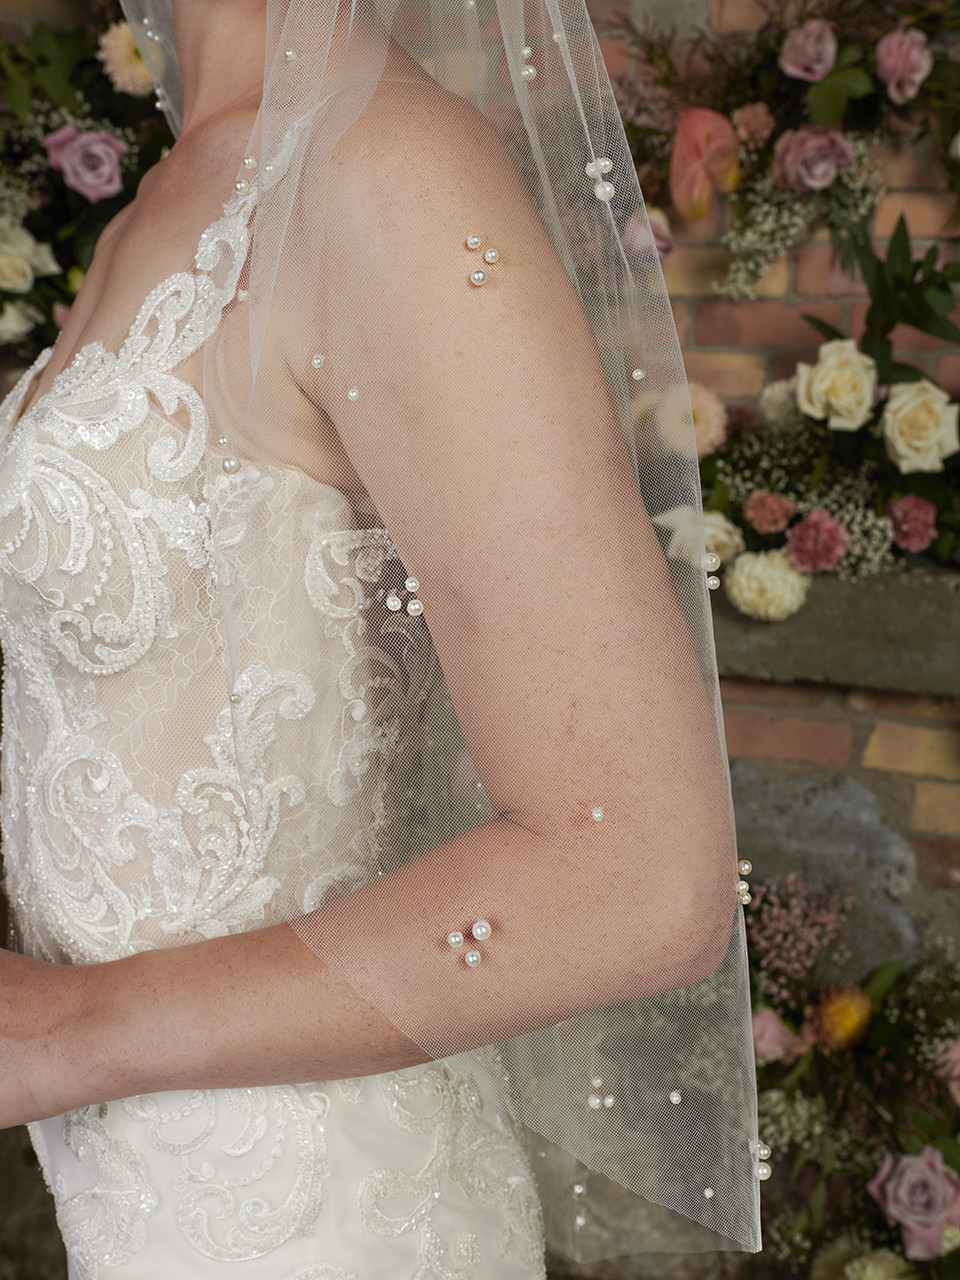 En Vogue Bridal Style V2295SF - English Tulle Veil With Scattered Pearls - 41 Inches